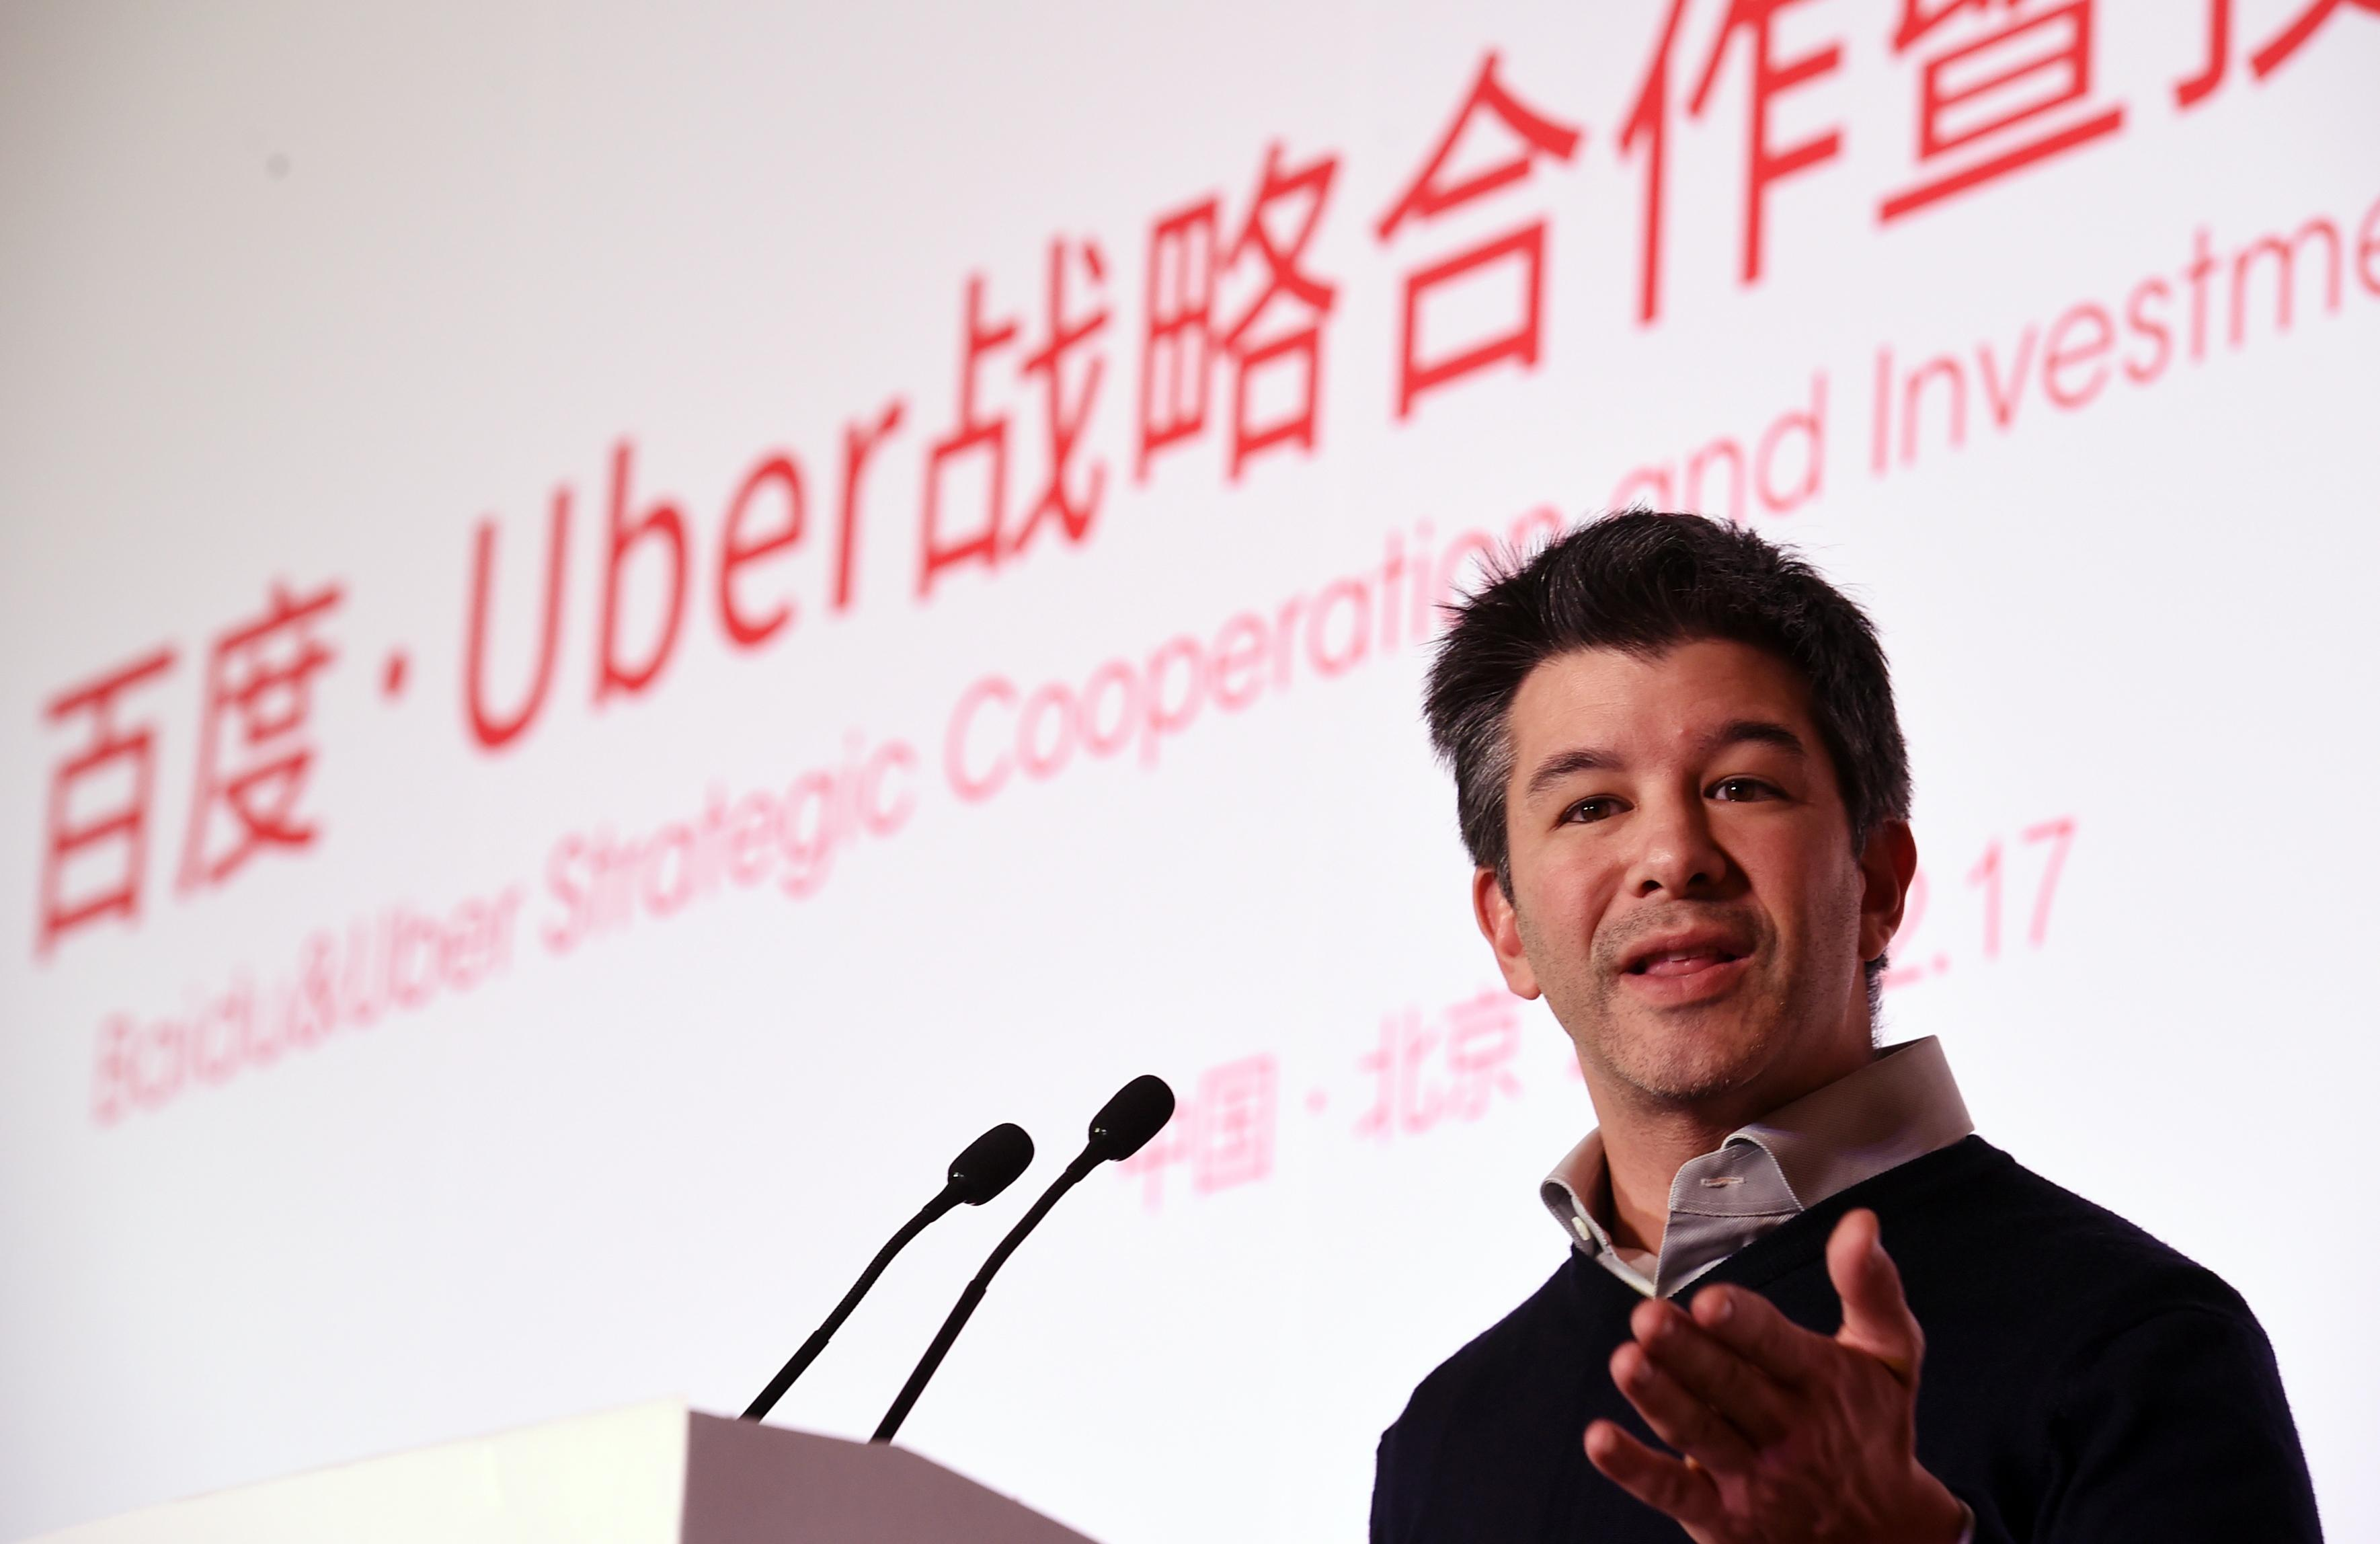 Uber says will expand service to 100 Chinese cities